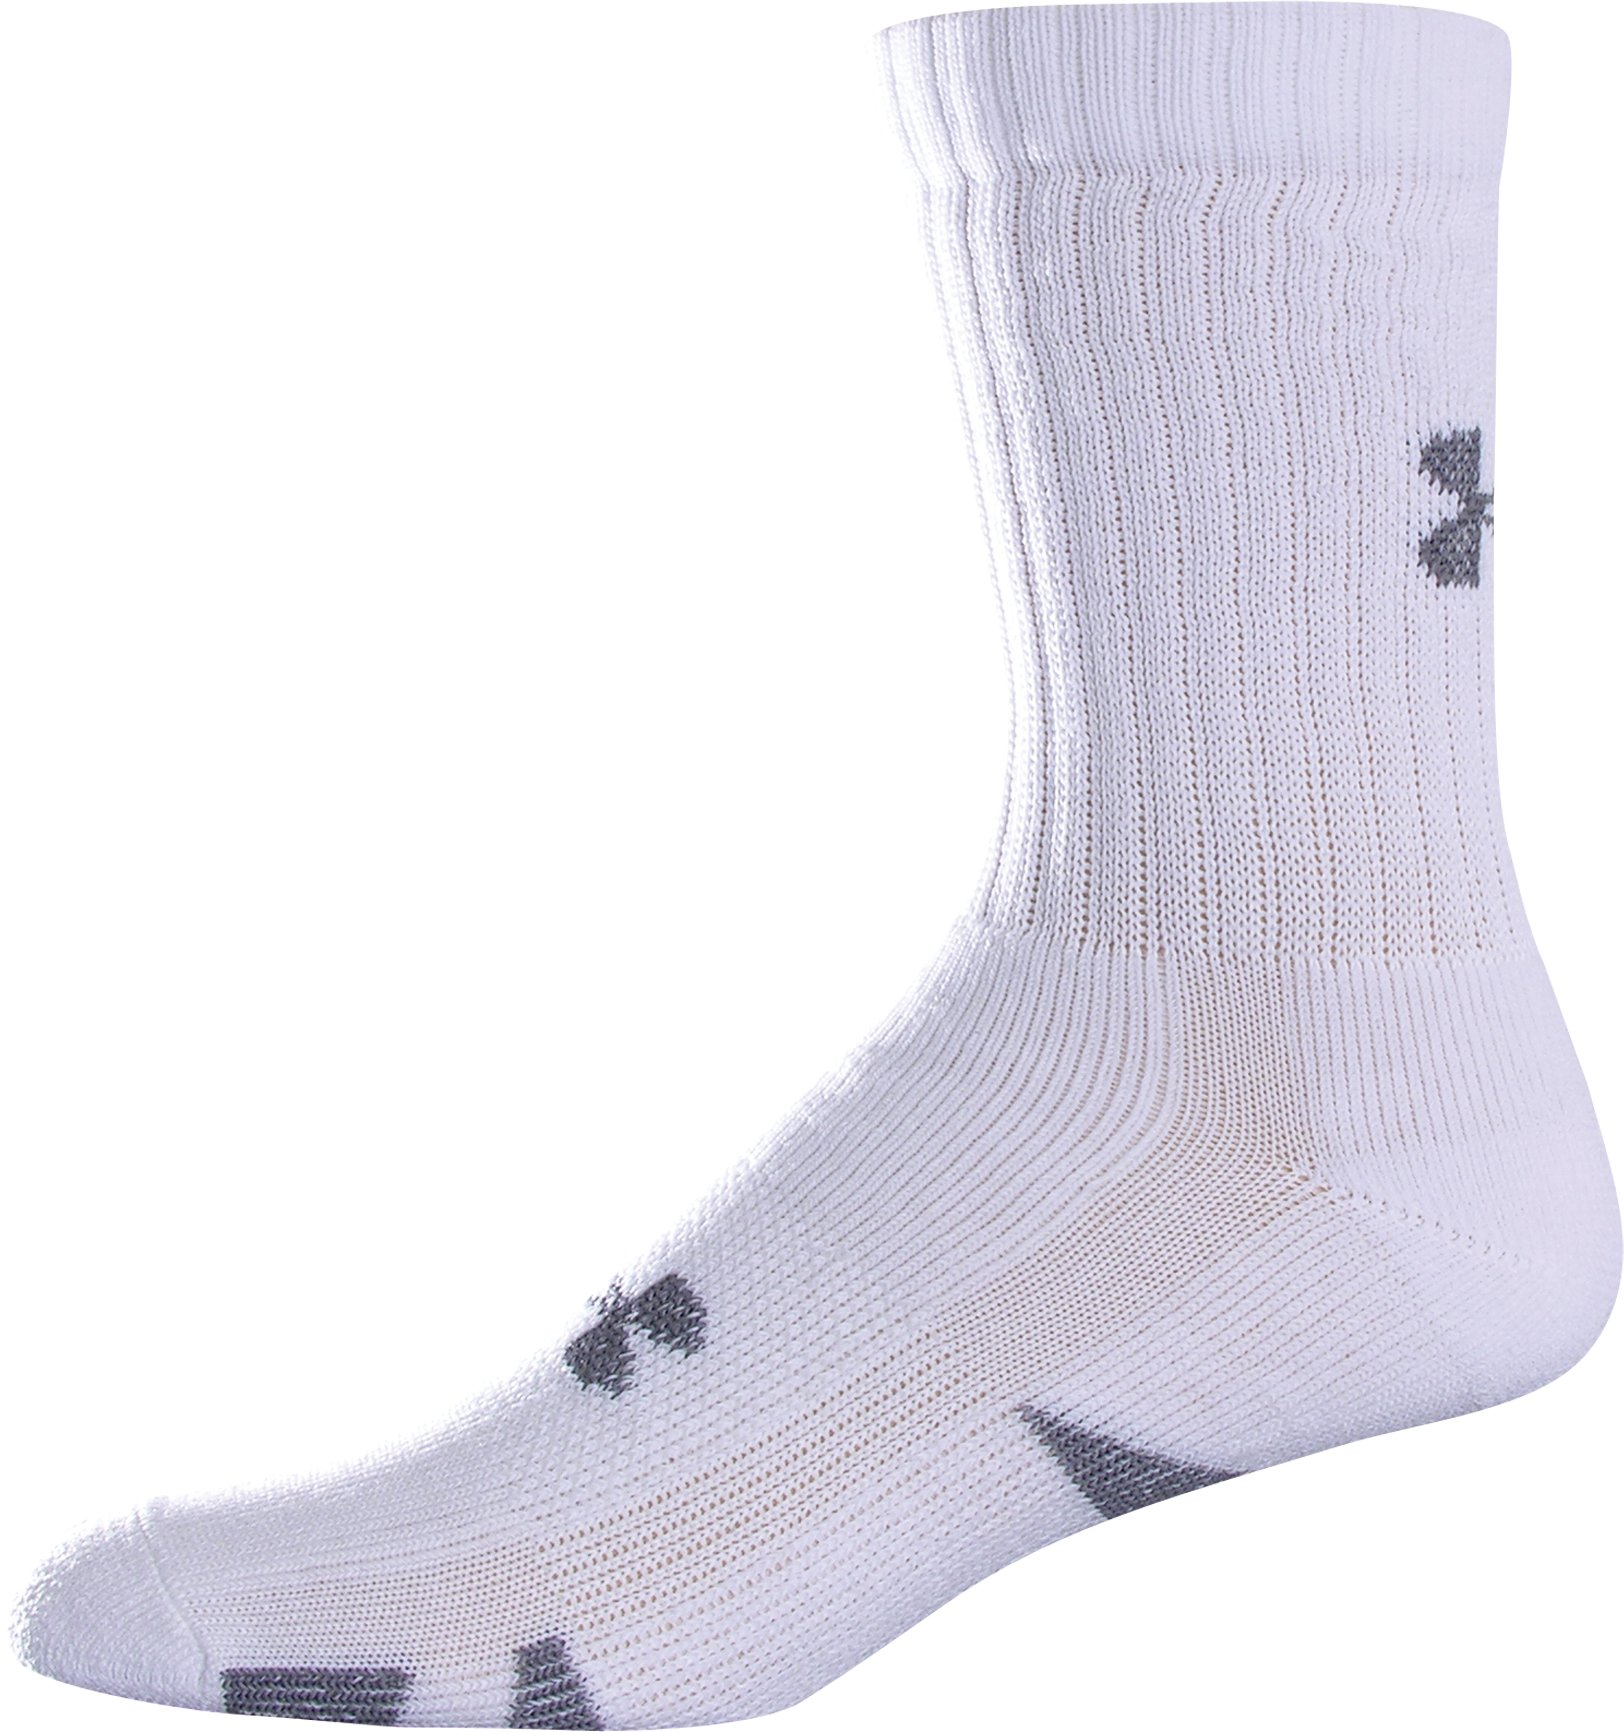 HeatGear® Trainer Crew Socks 4-Pack, White